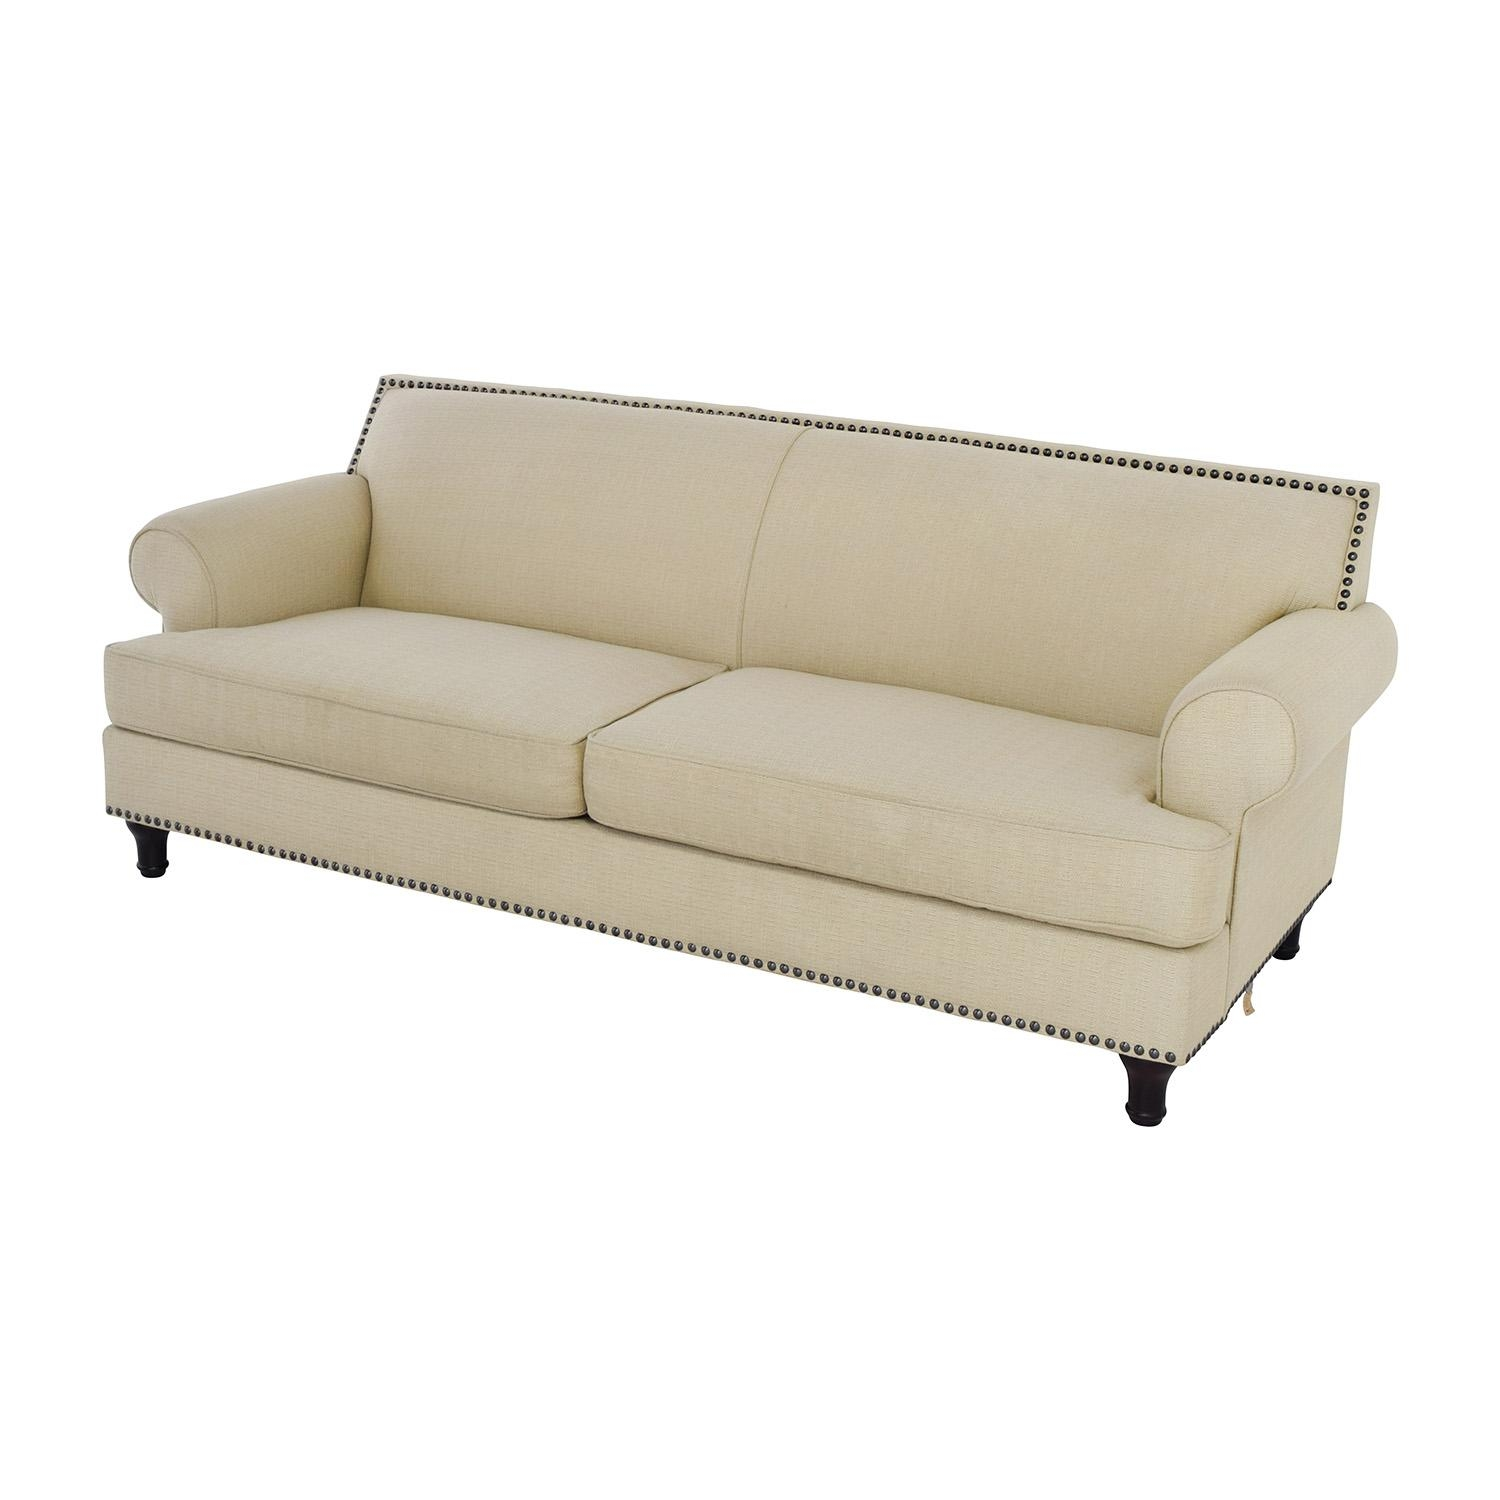 48% Off – Pier 1 Pier 1 Carmen Tan Couch With Studs / Sofas For Pier 1 Sofa Beds (View 3 of 20)